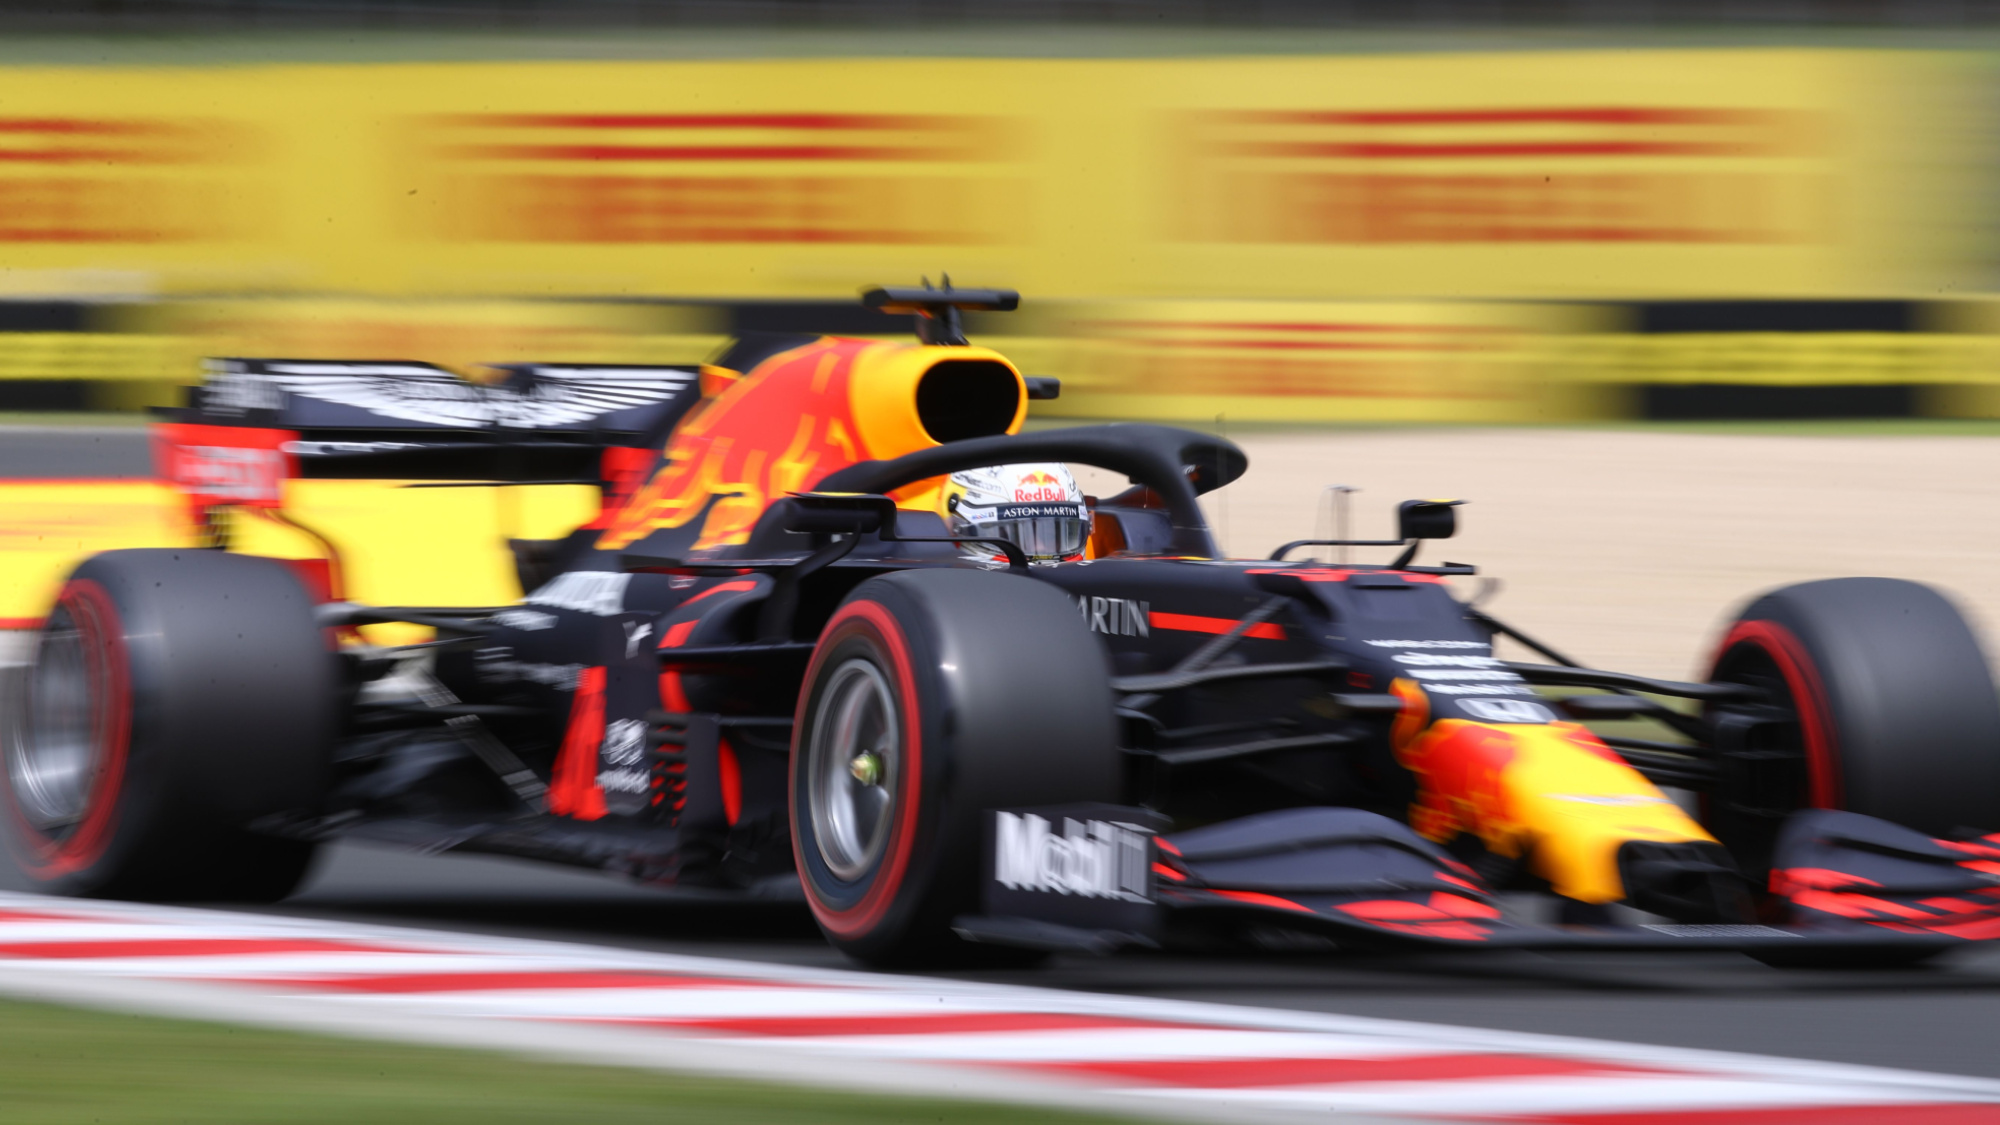 Max Verstappen during the 2020 Hungarian Grand Prix